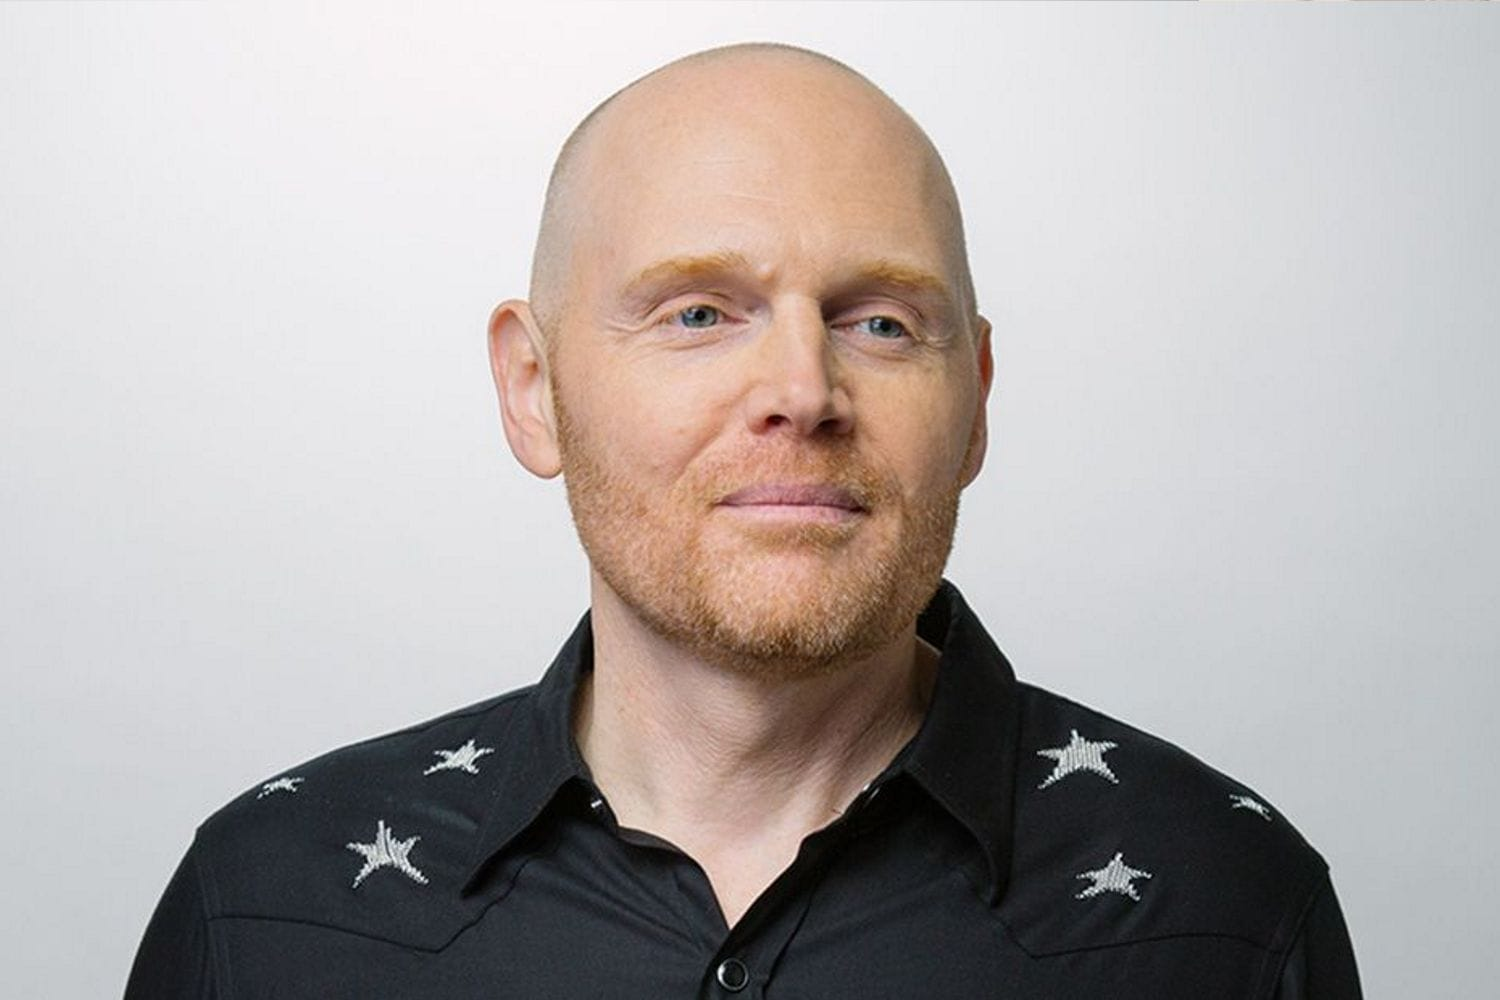 Comedian Bill Burr to perform in Prague for the first time next month